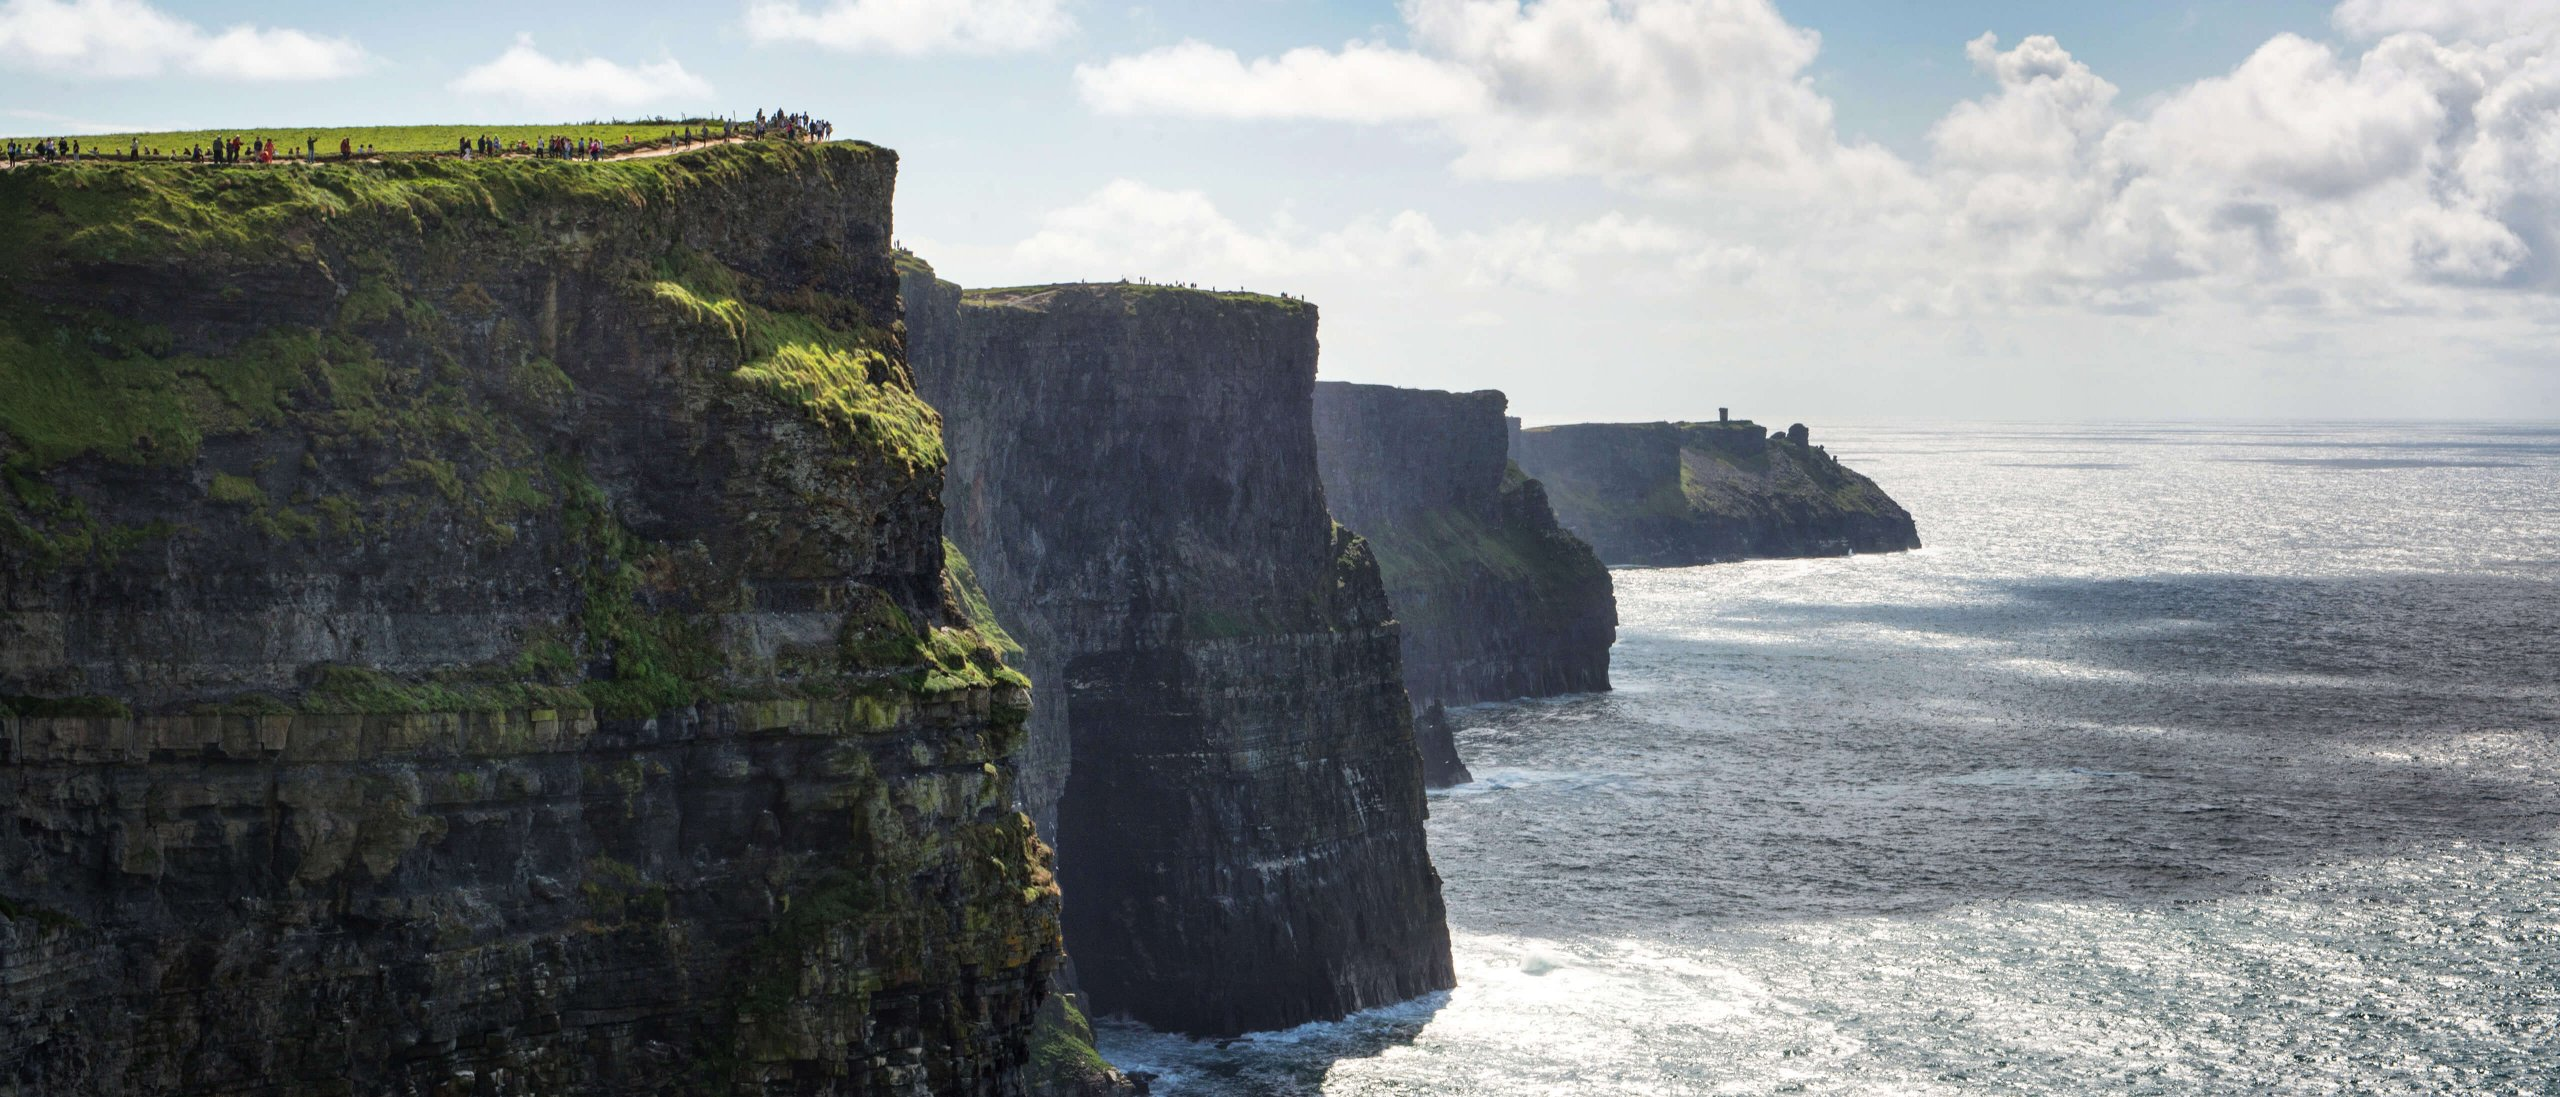 Dramatic shot of very small people standing on top of the Cliffs of Moher in Ireland